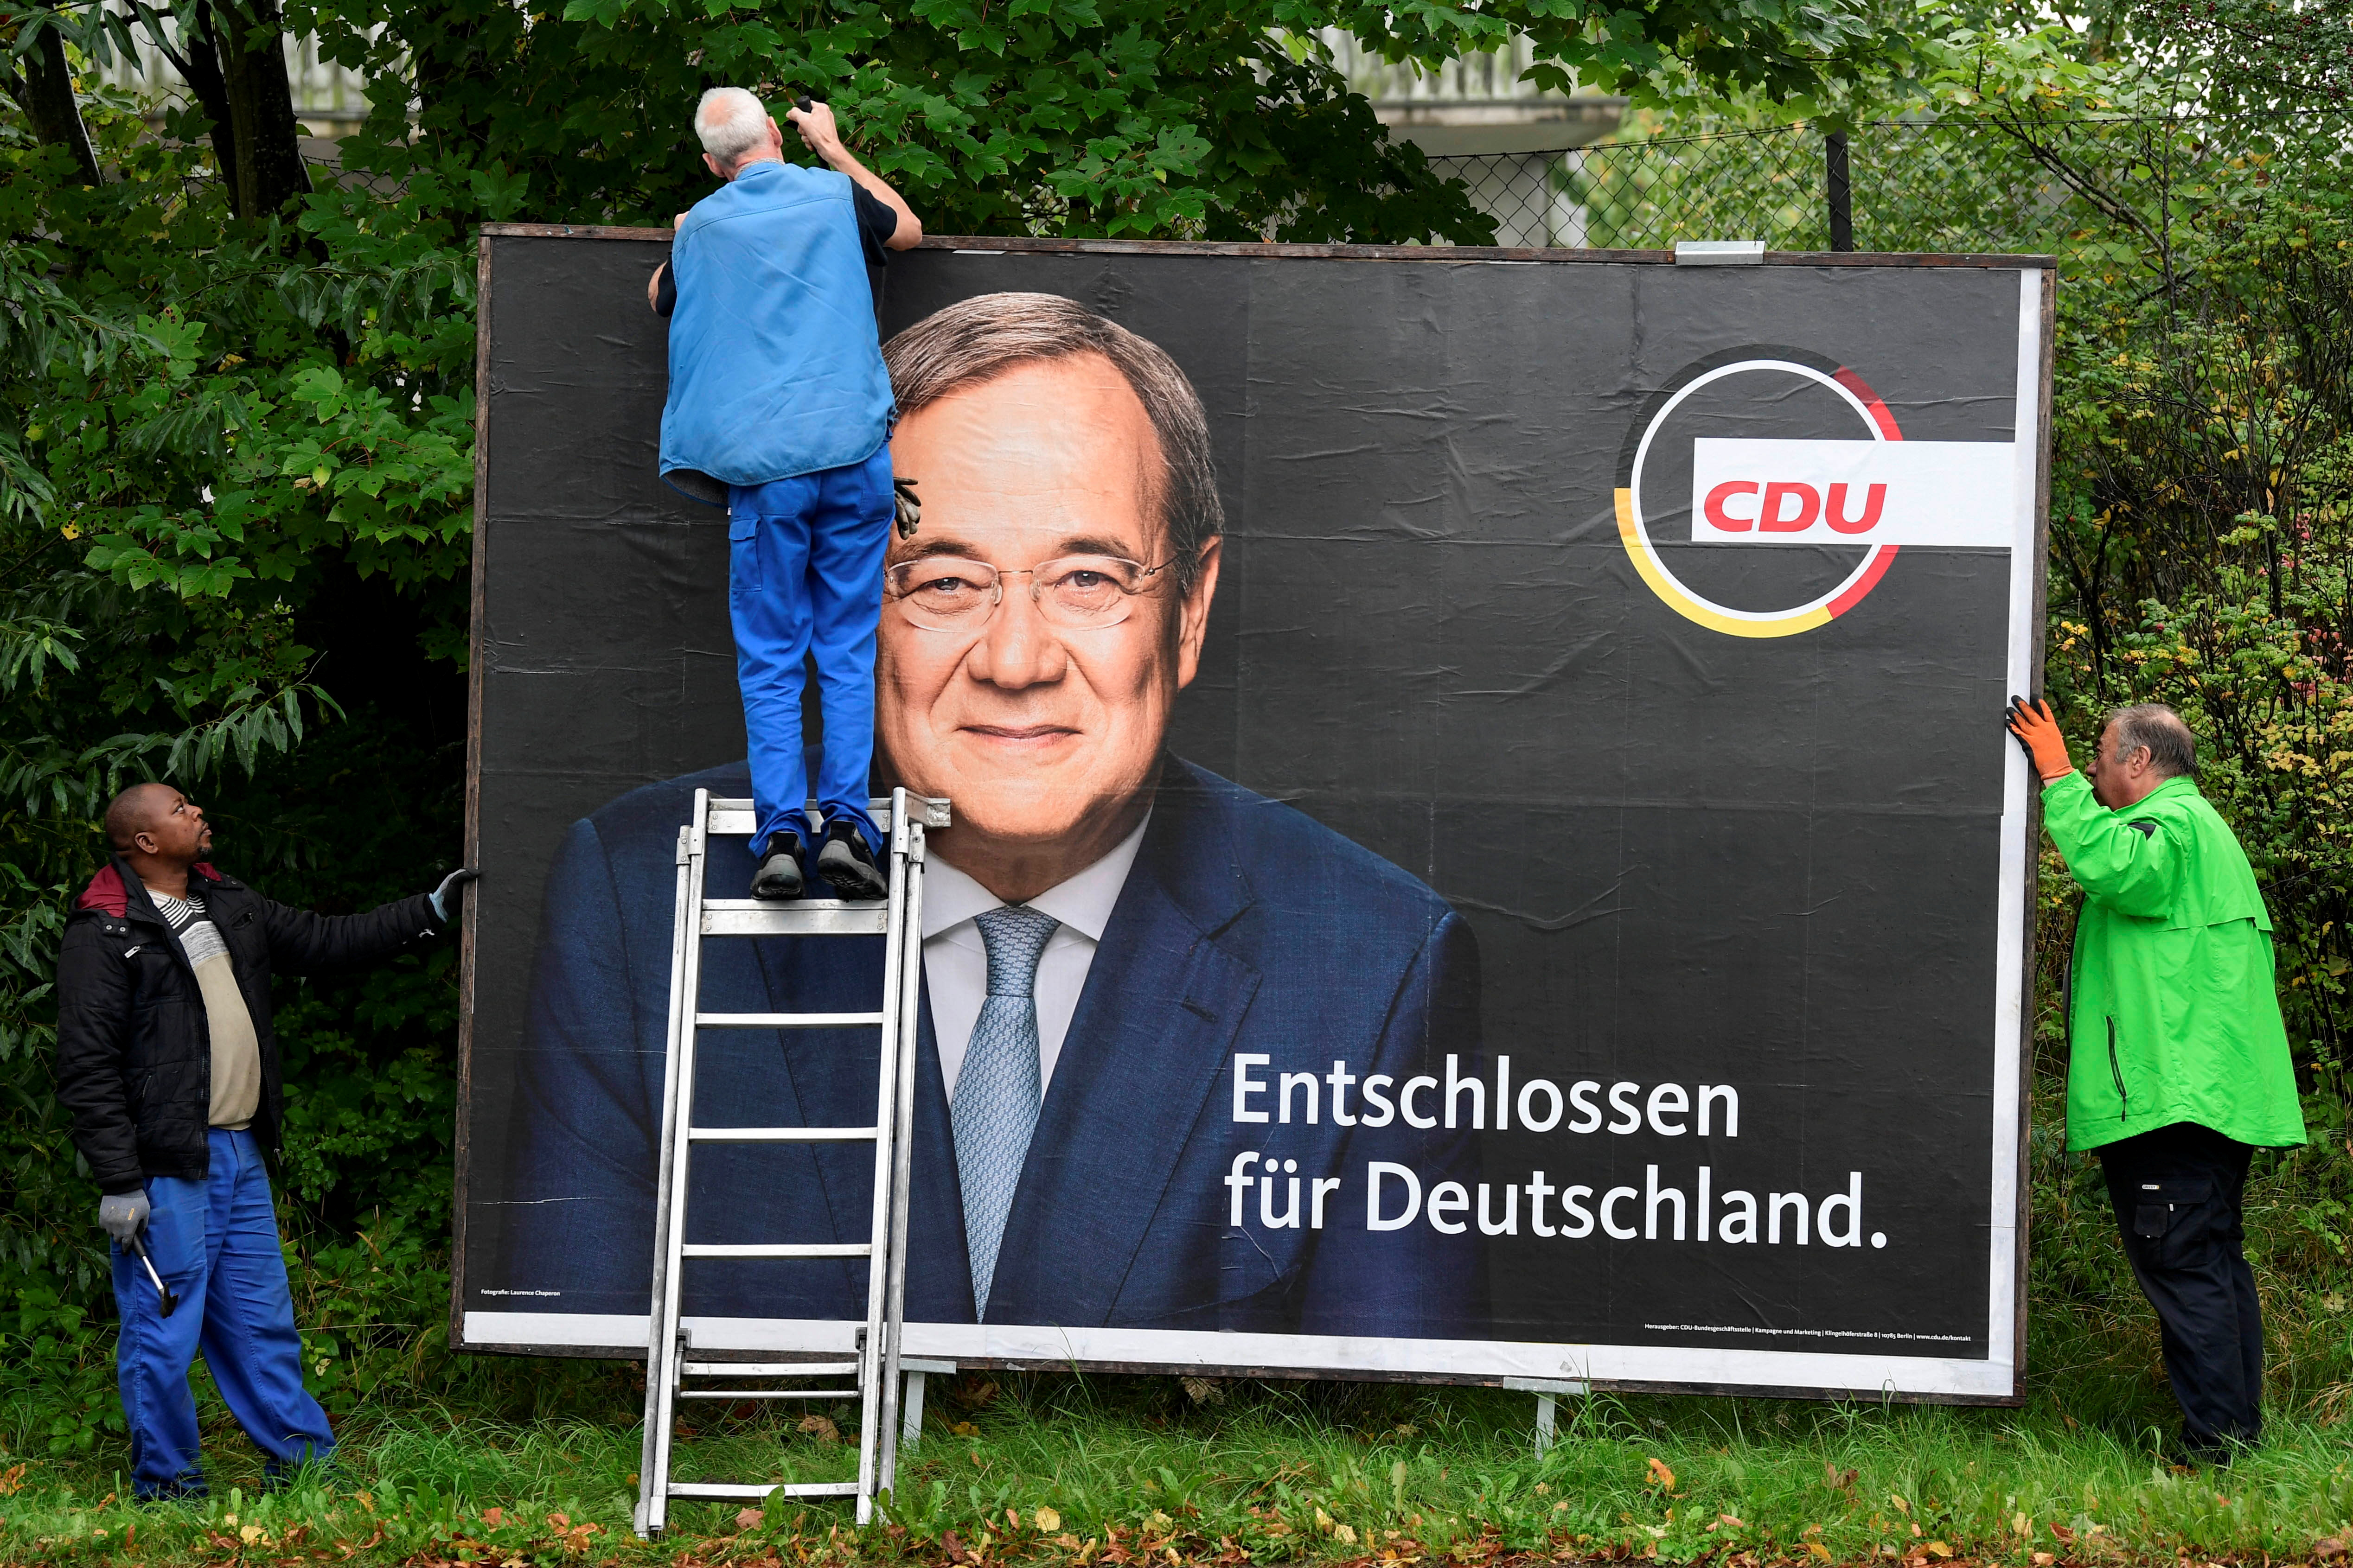 Workers remove an election campaign poster showing Armin Laschet, candidate for Chancellor of Germany's Christian Democratic Union party CDU, the day after the German general elections, in Bad Segeberg near Hamburg, Germany, September 27, 2021. REUTERS/Fabian Bimmer